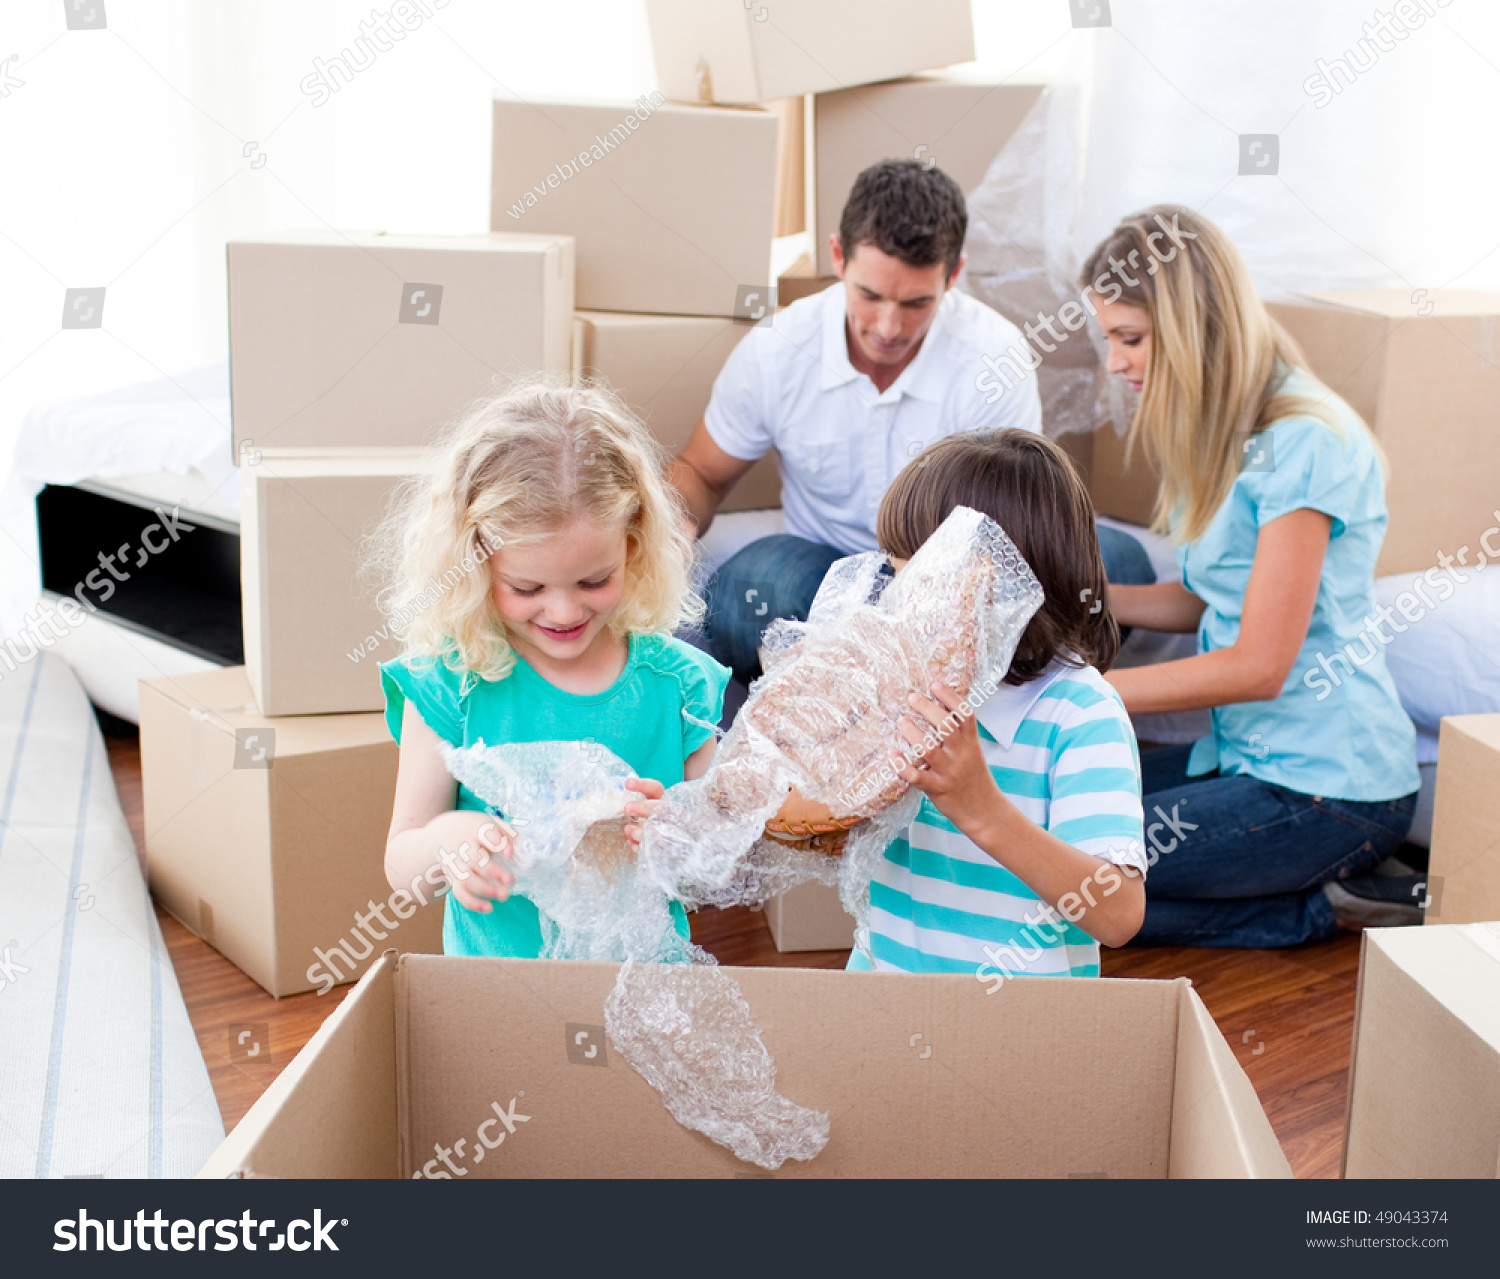 Packing boxes for moving house simple open moving boxes for Used boxes for moving house